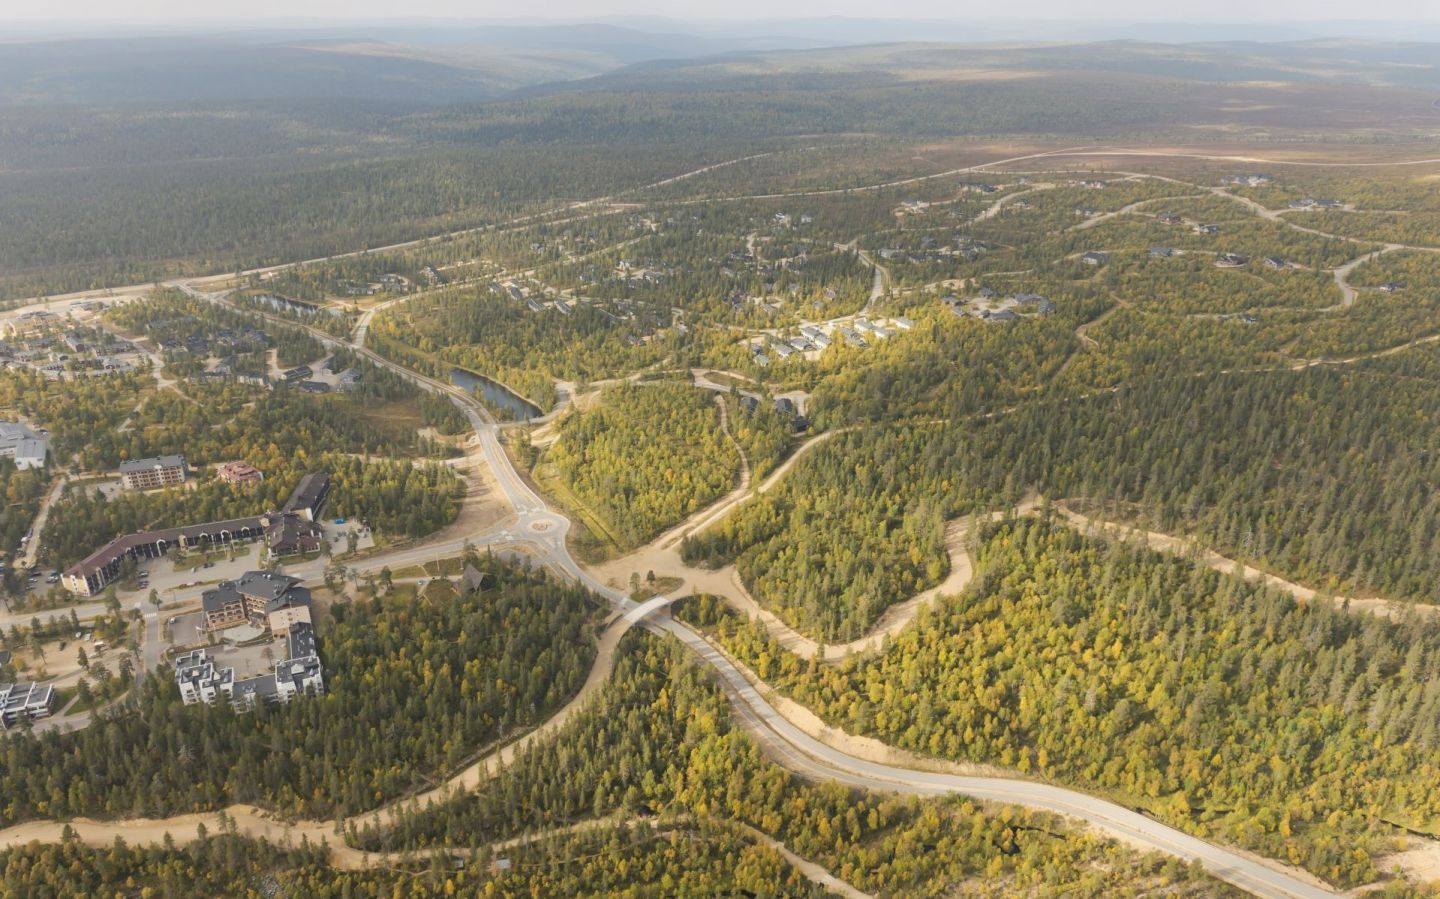 Aerial view of the plot and investment opportunity in Saariselkä